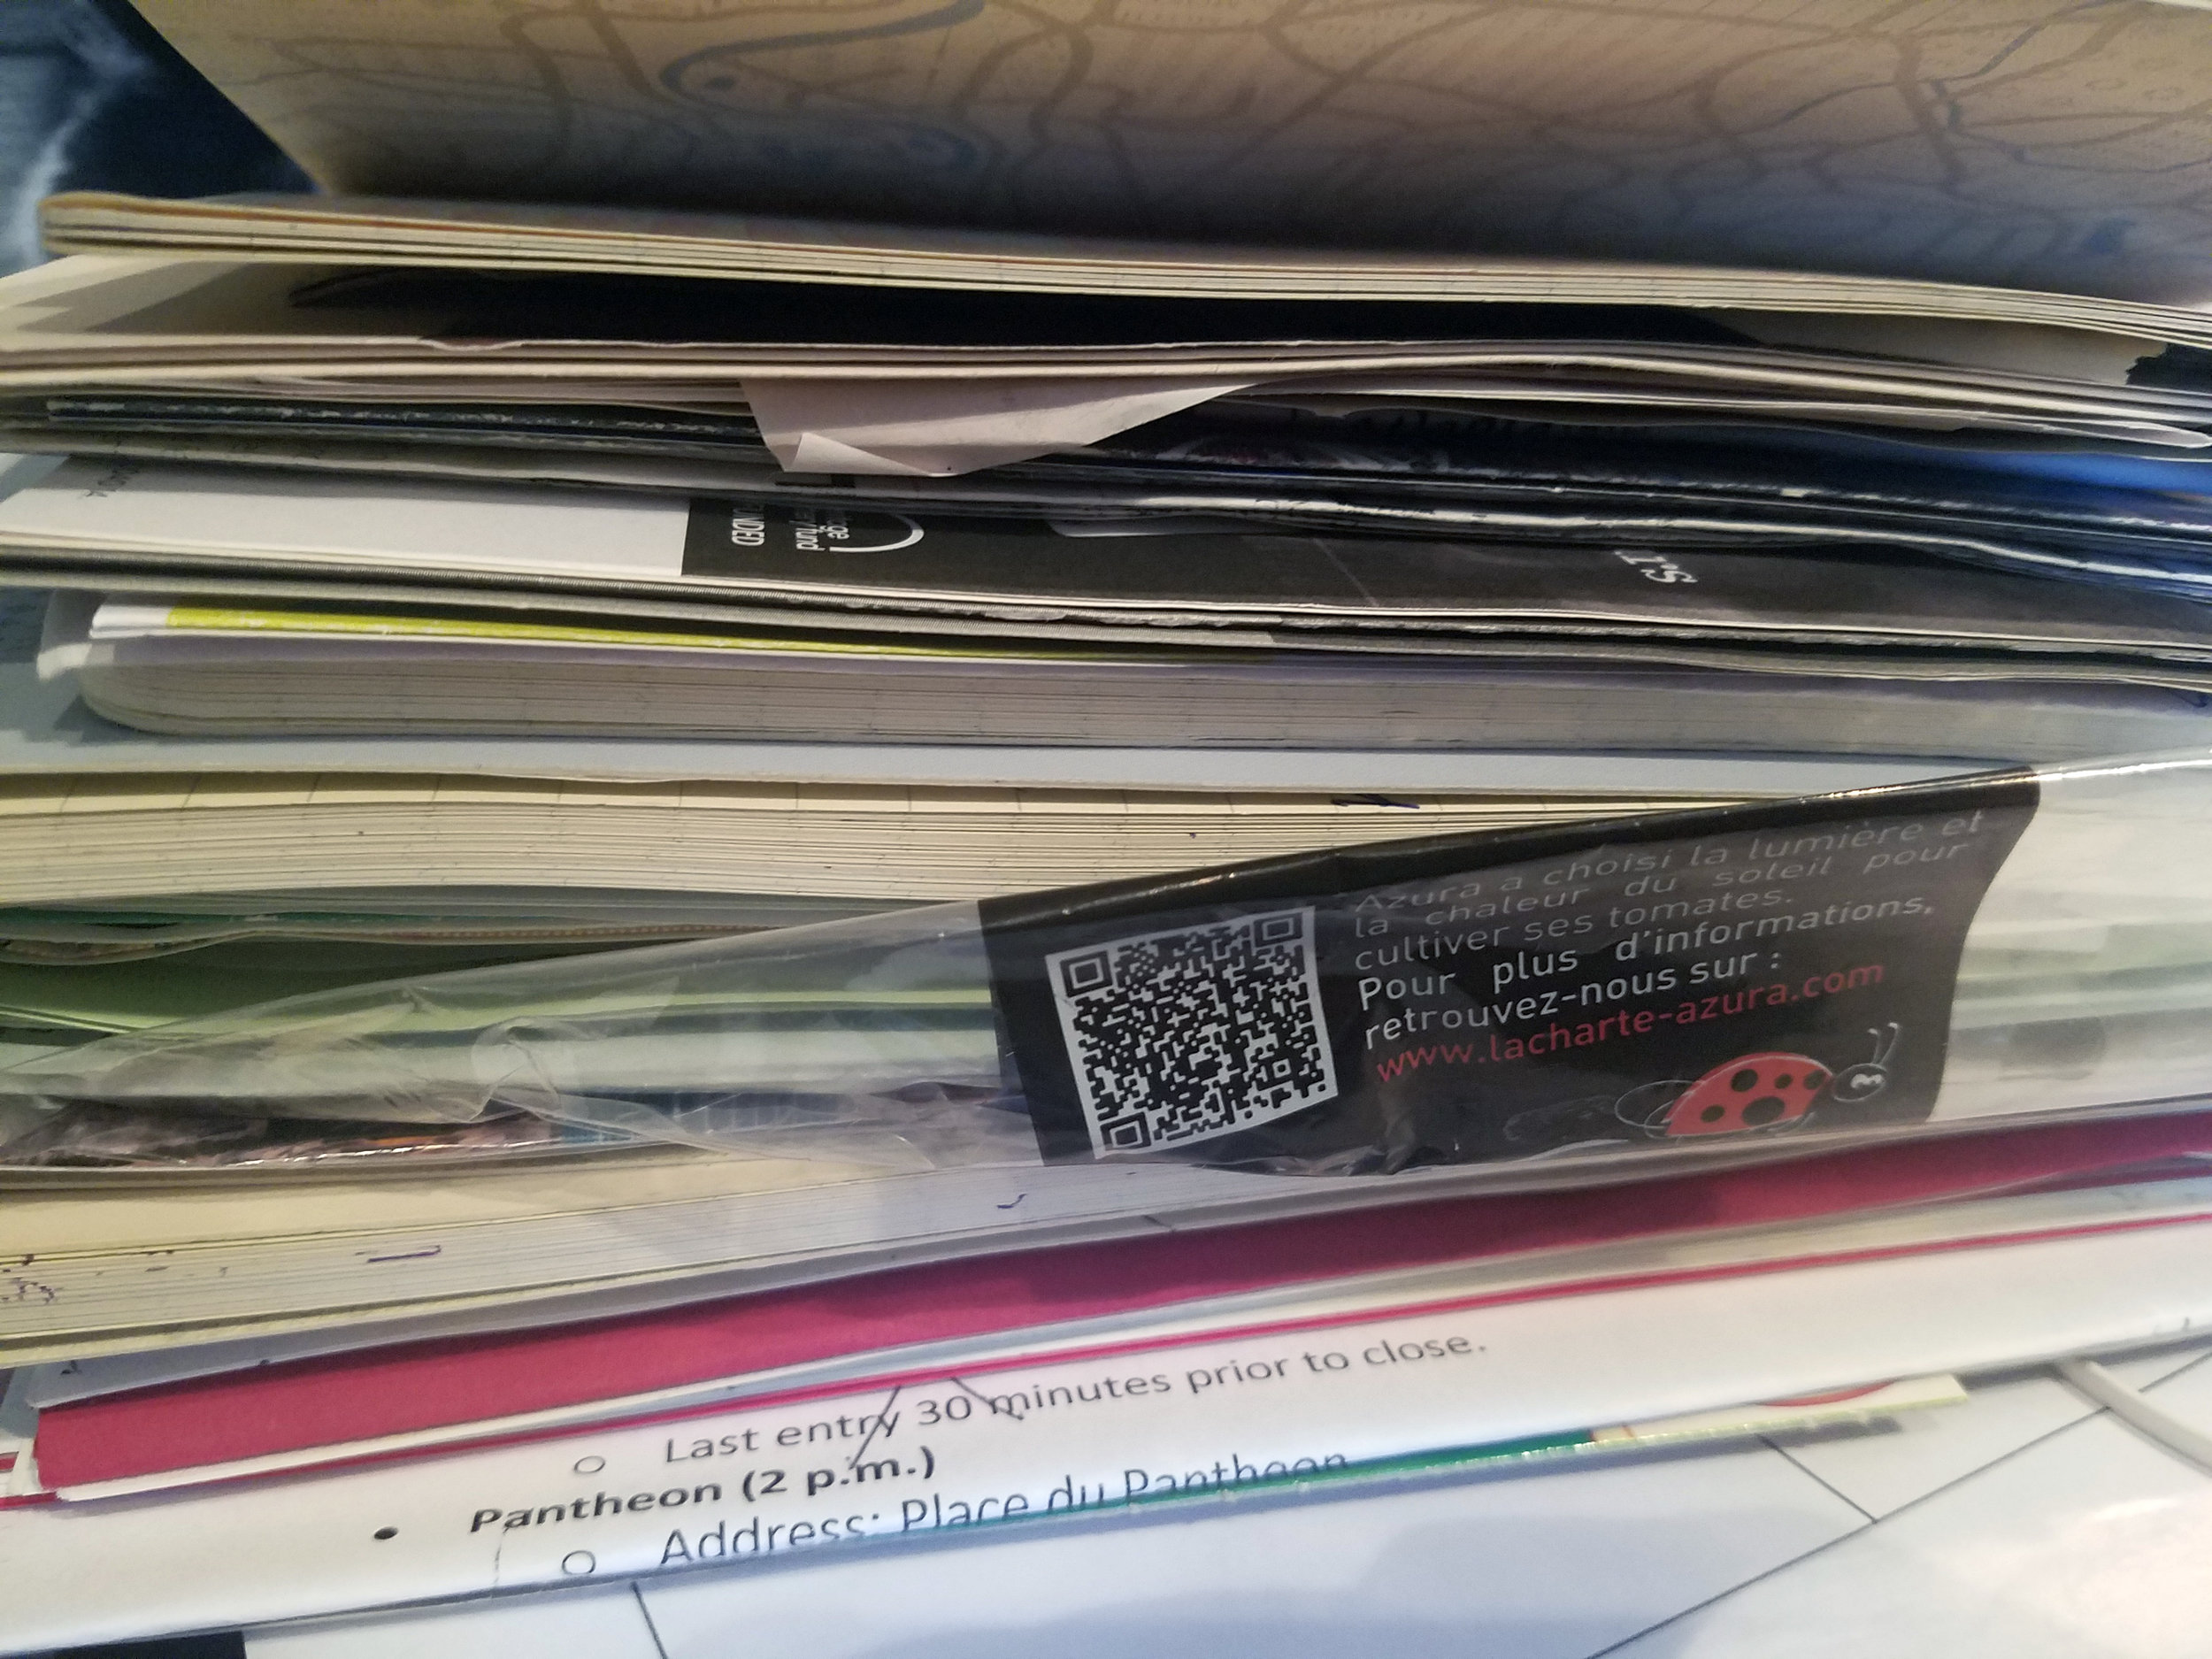 Travel journal hoarders, unite!